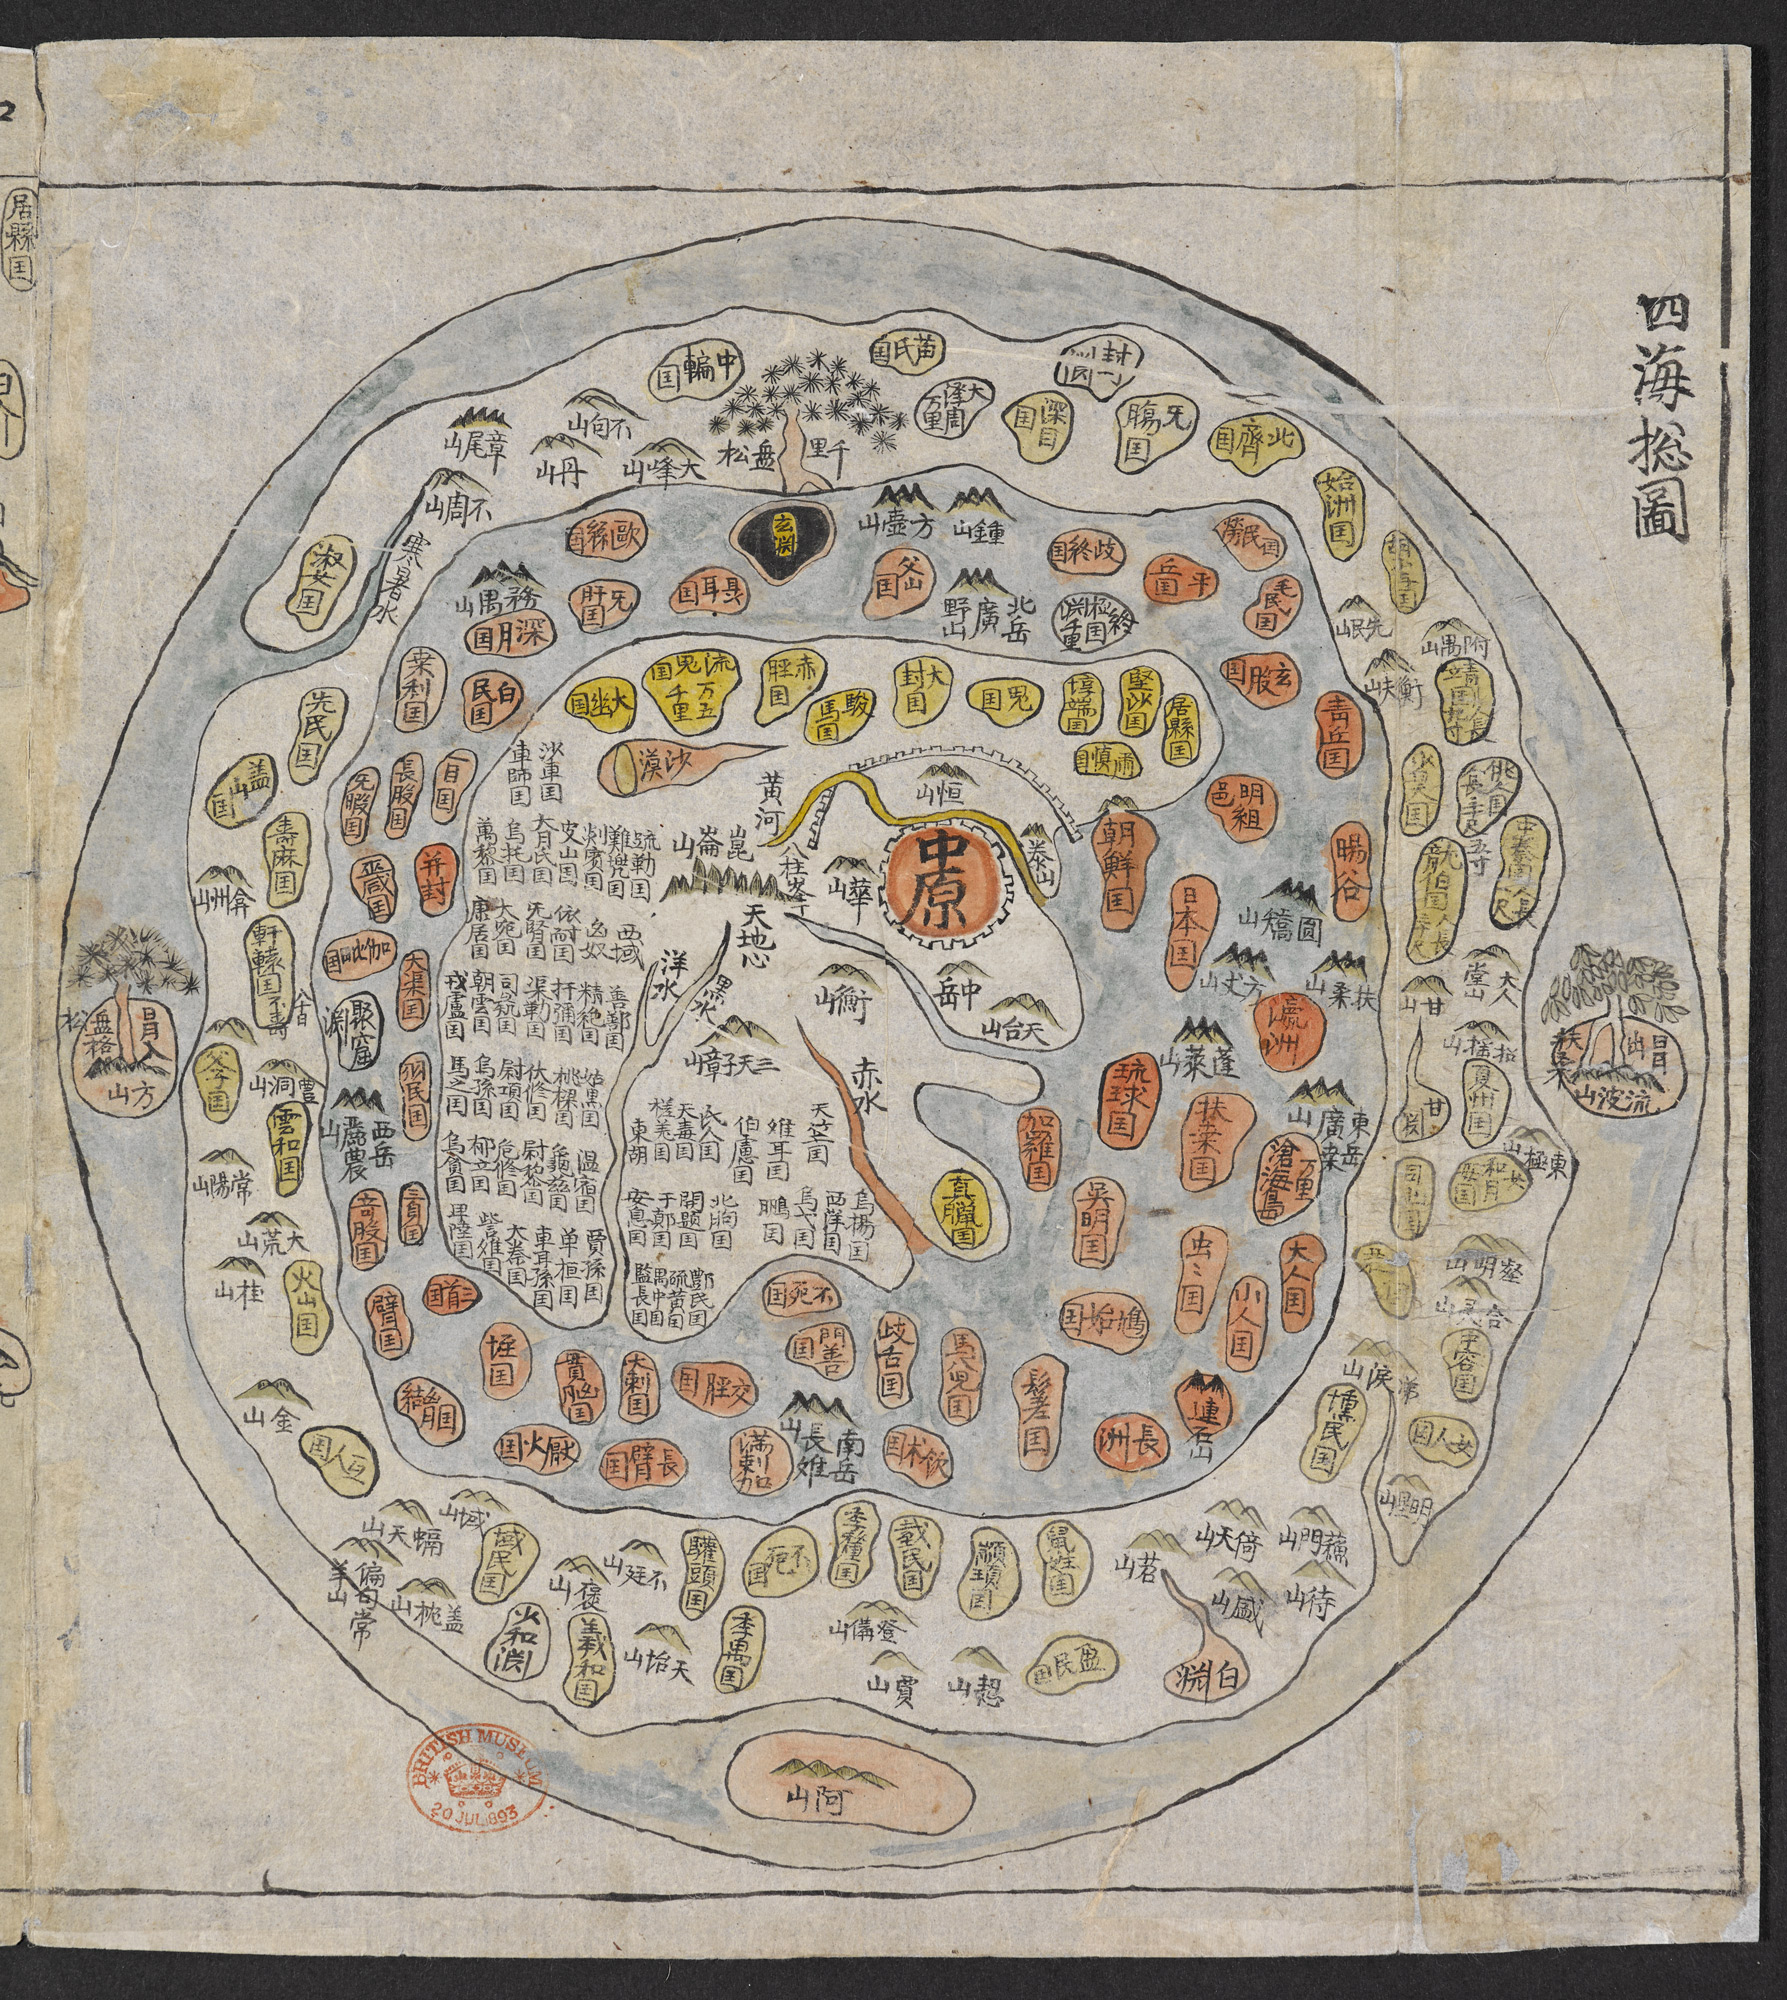 Cheonhado World Map Seoul C 1800 The British Library